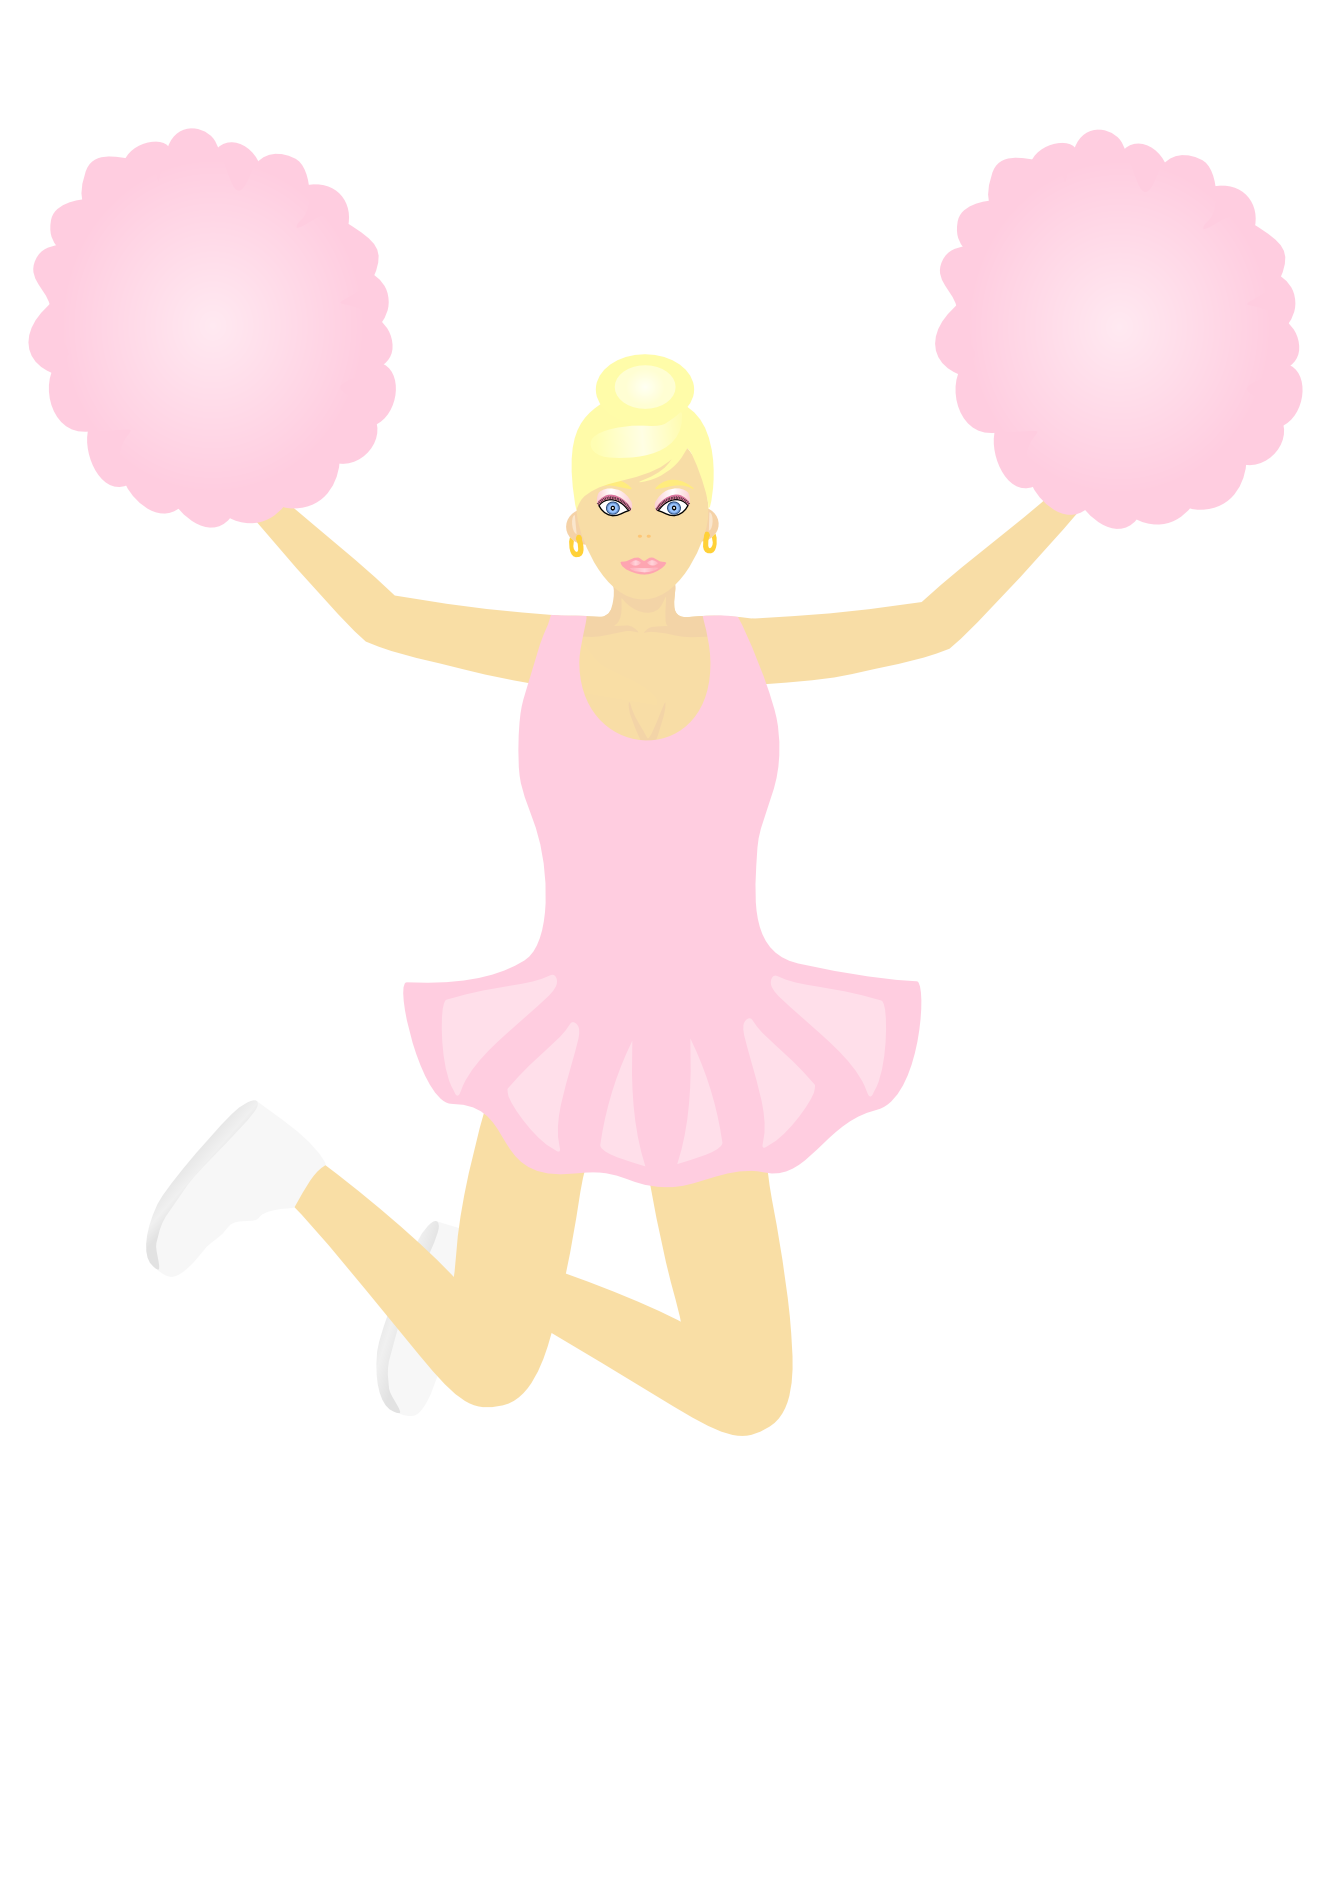 Cheer Toe Touch Clip Art Viewing 20 Images For Cheer Toe Touch Clip